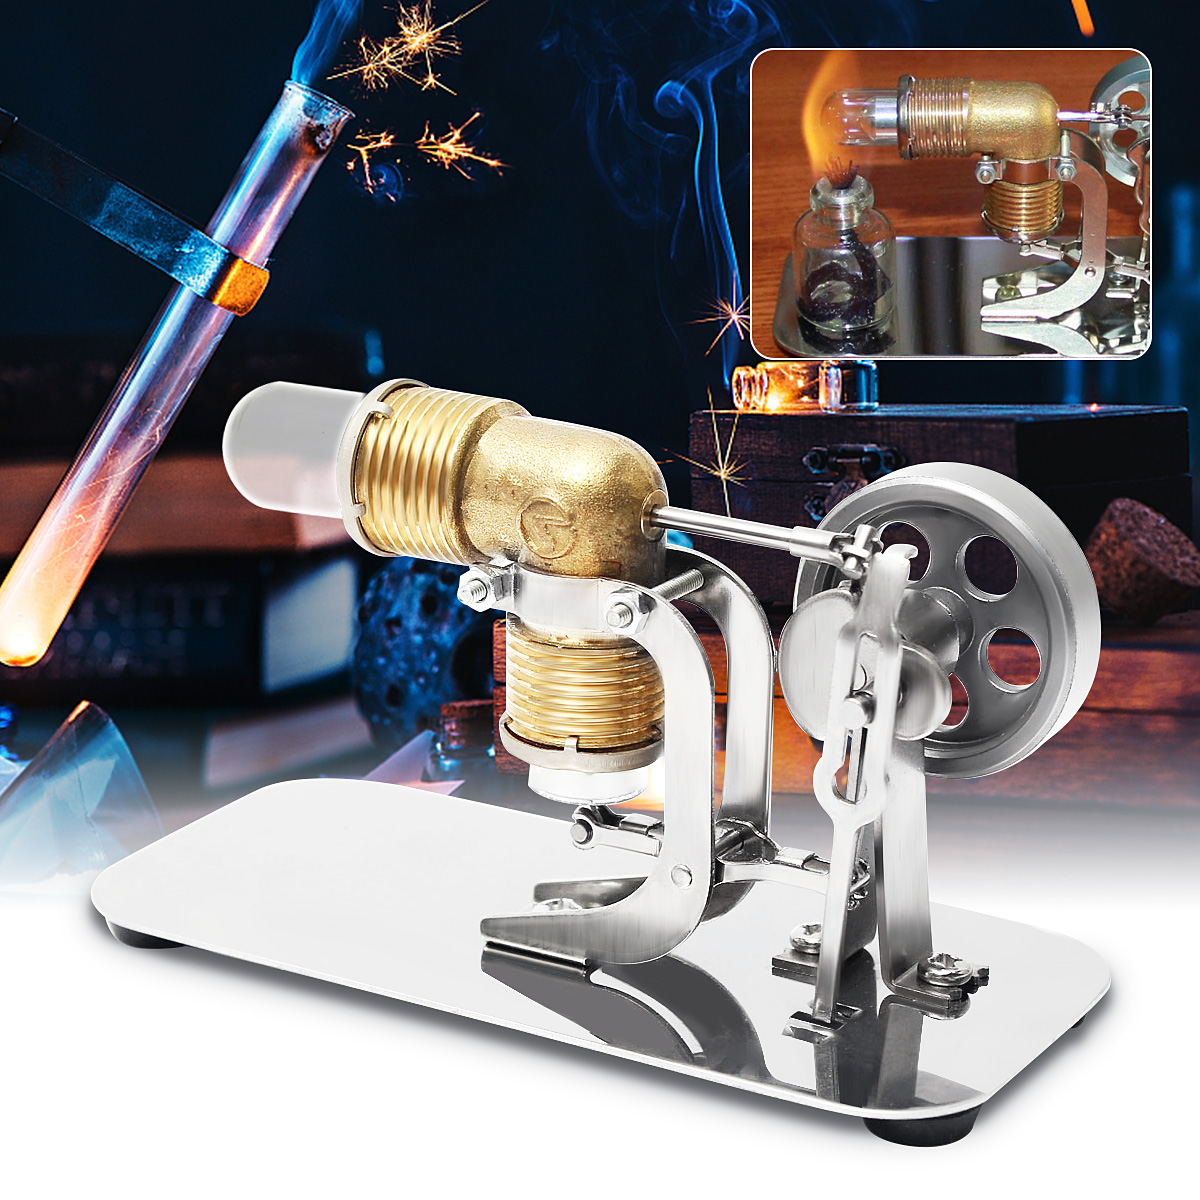 Mini Hot Air Stirling Engine Motor Model Educational Toy Kits Electricity Gift